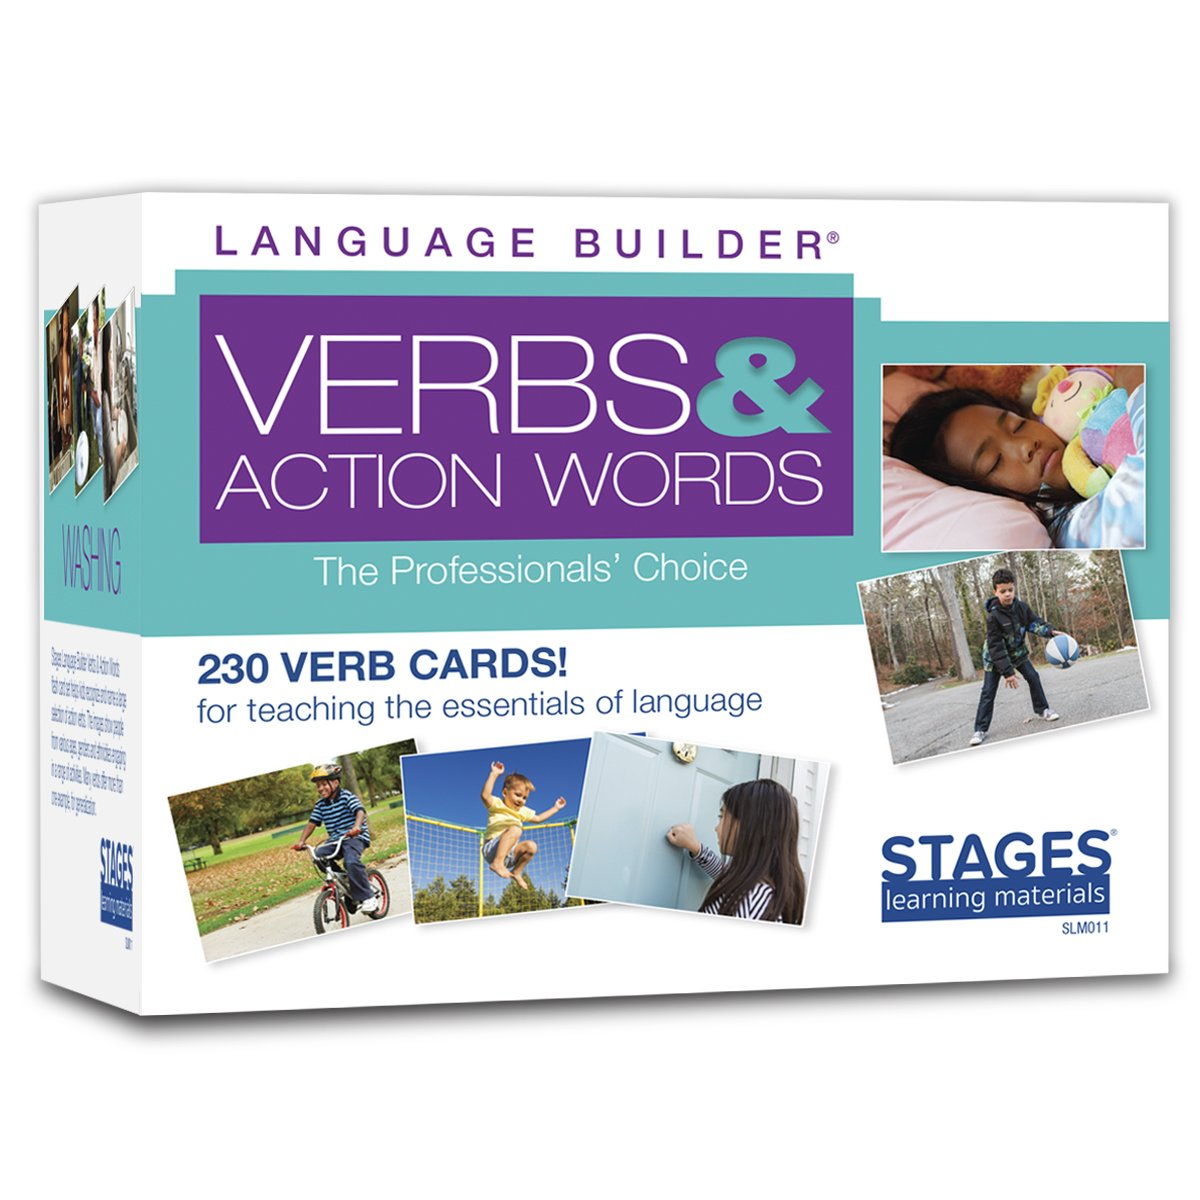 Stages Learning Materials Language Builder Verb Flash Cards Photo Vocabulary Autism Learning Products for Aba Therapy Speech Articulation